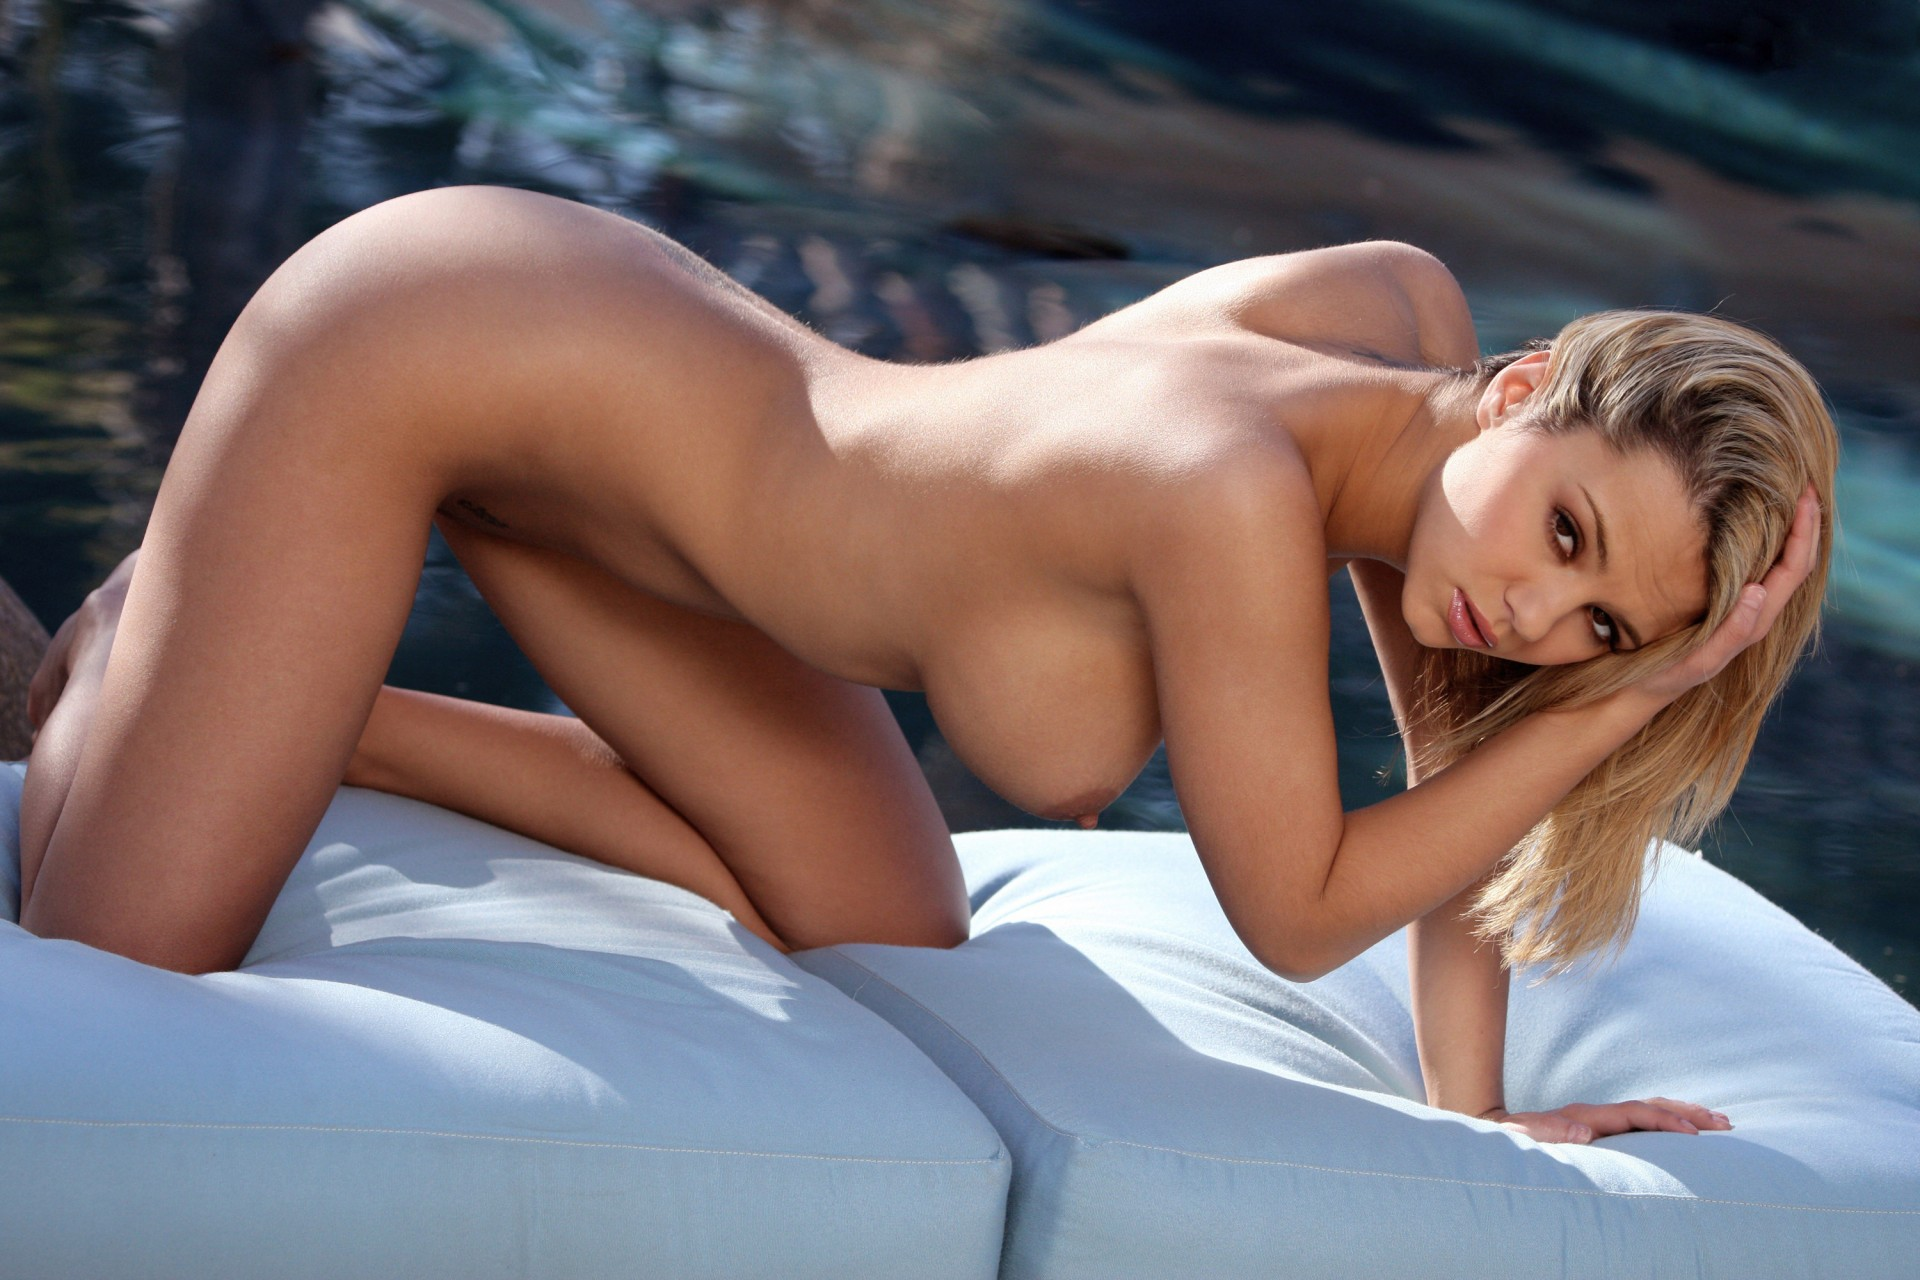 beautiful-women-nude-pictures-erotic